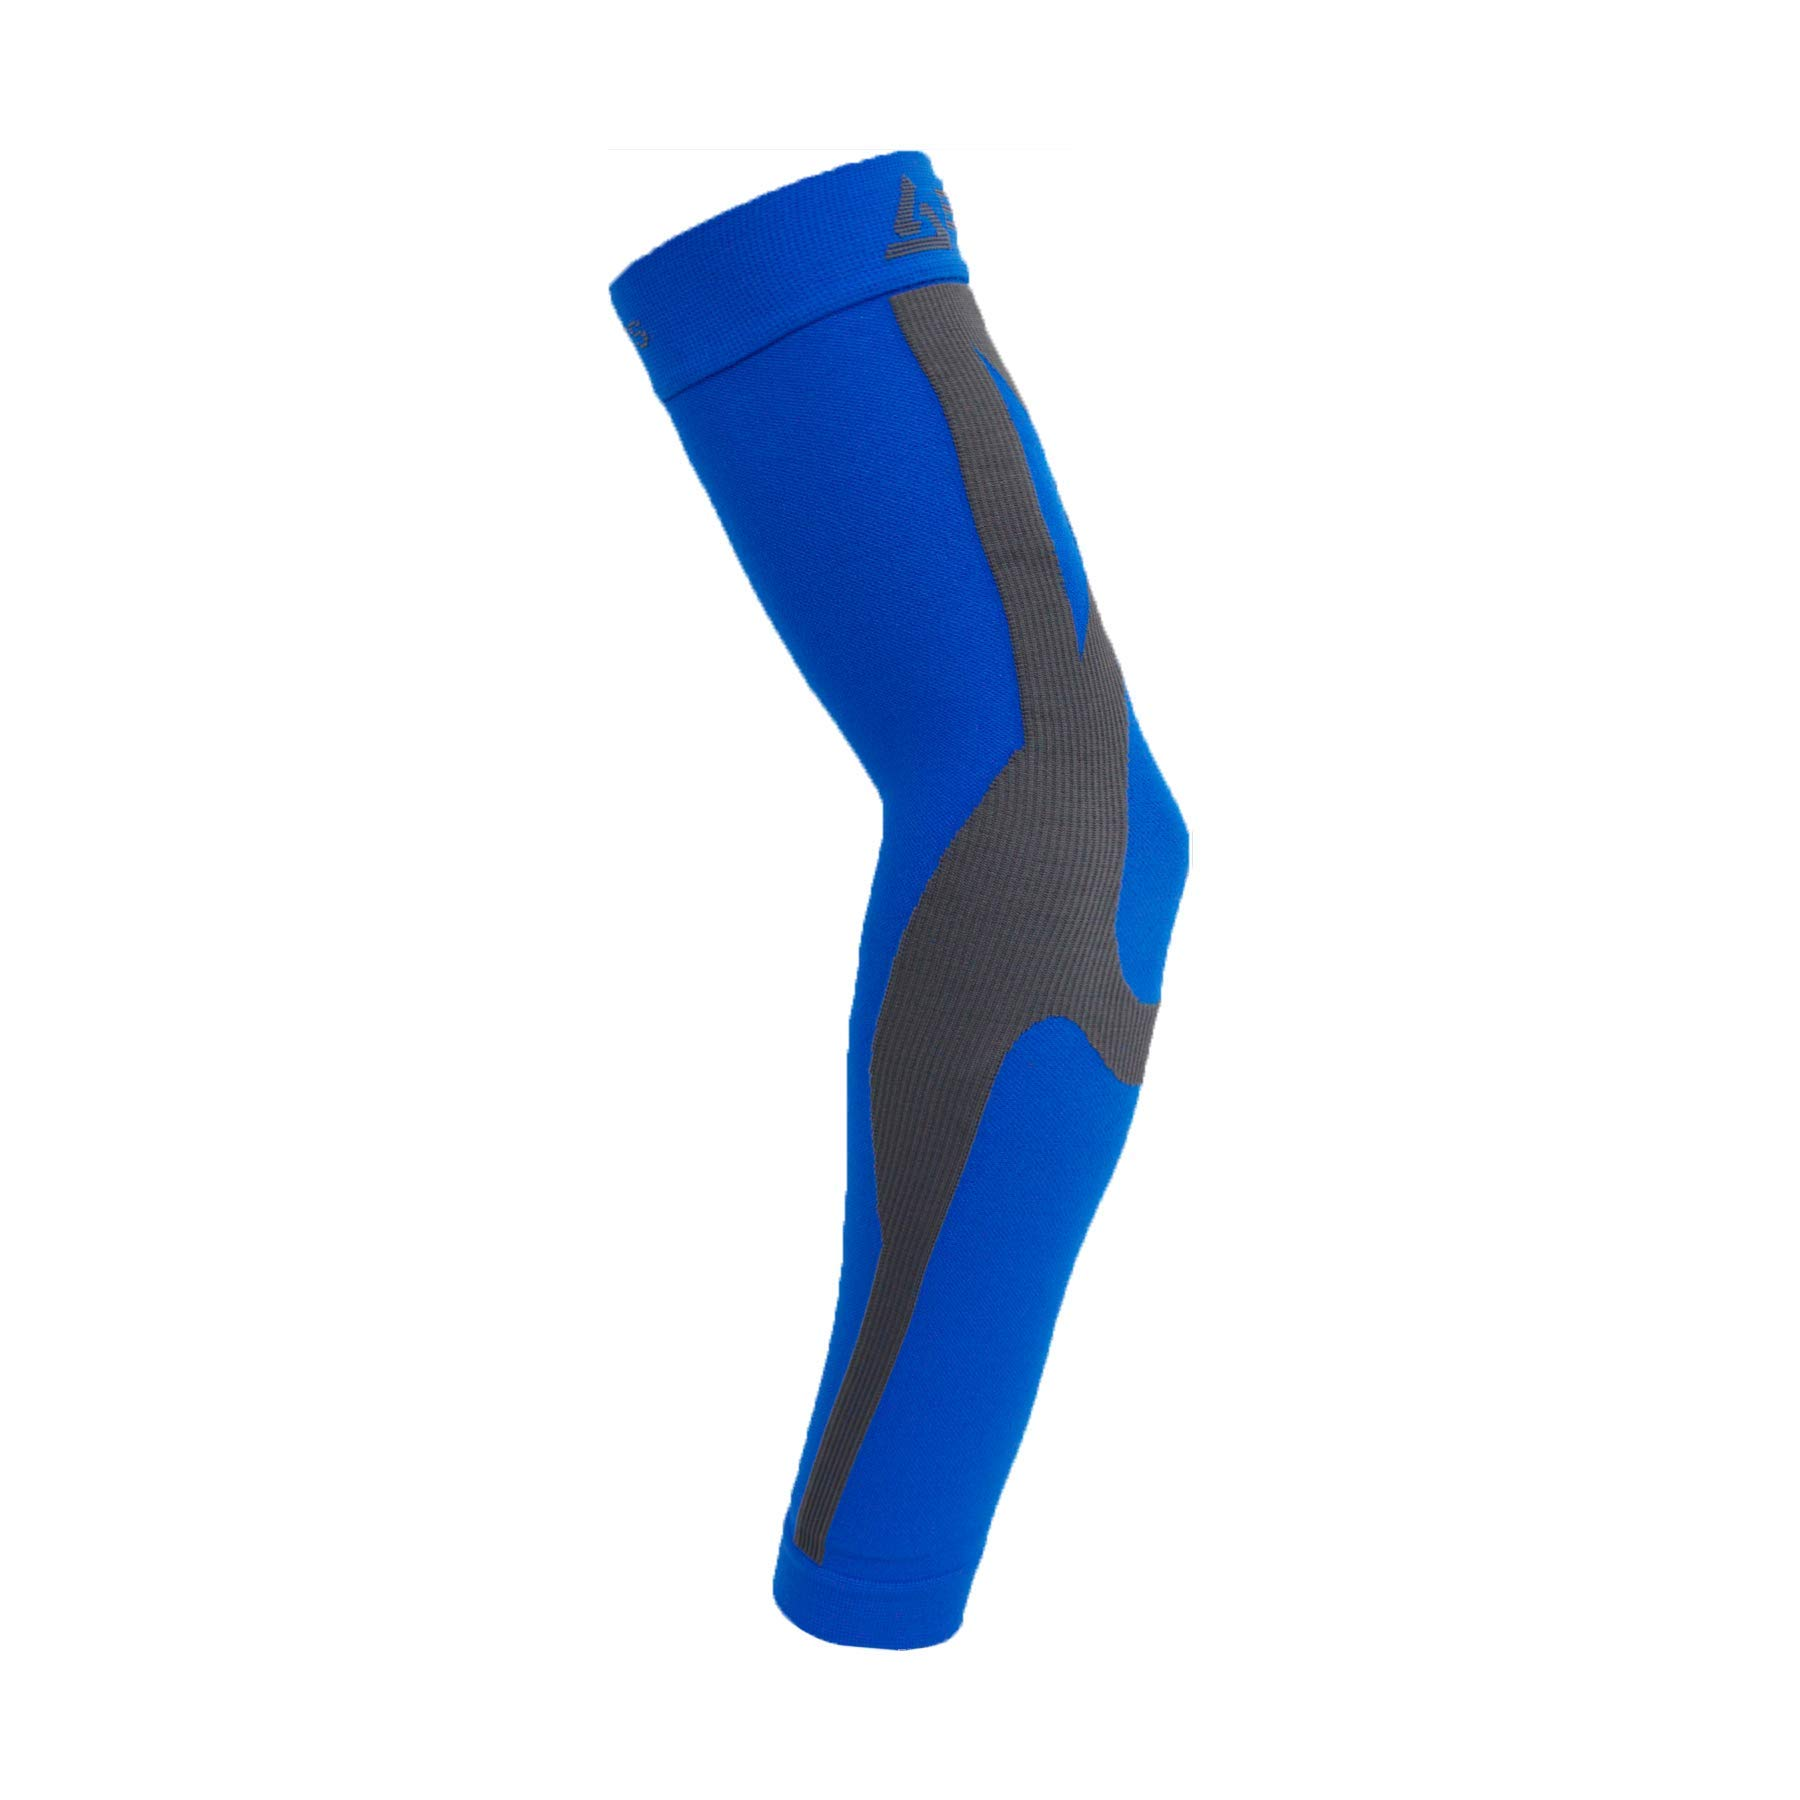 Compression Arm Sleeve with Enhance Graduated | 20-30mmHG | for - Artritis - Tendonitis - Pain Relief & Supports Muscles/Joints